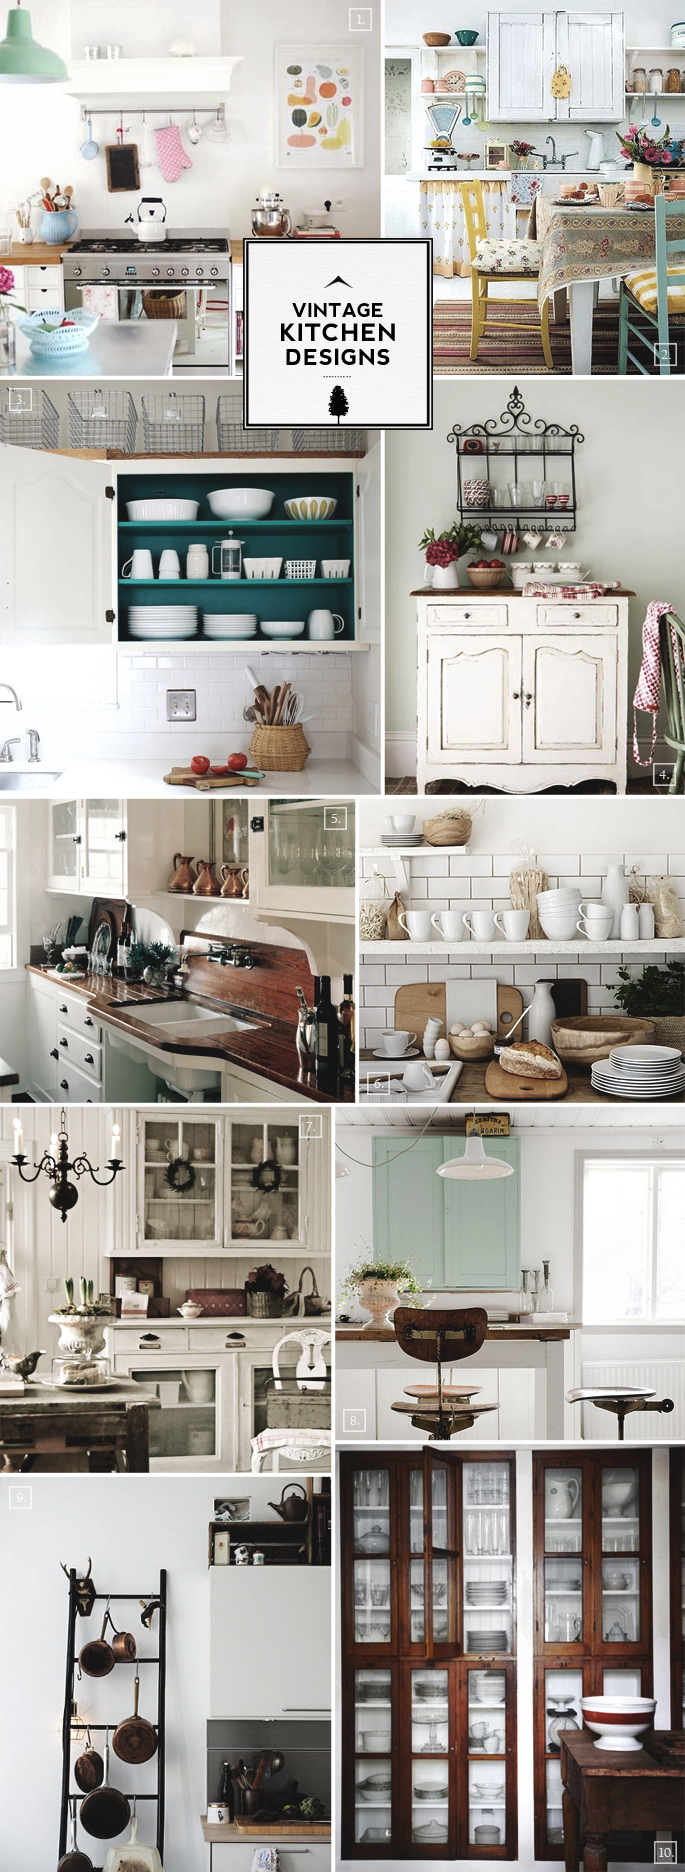 Vintage kitchen design accessories and decor ideas for Vintage kitchen designs photos